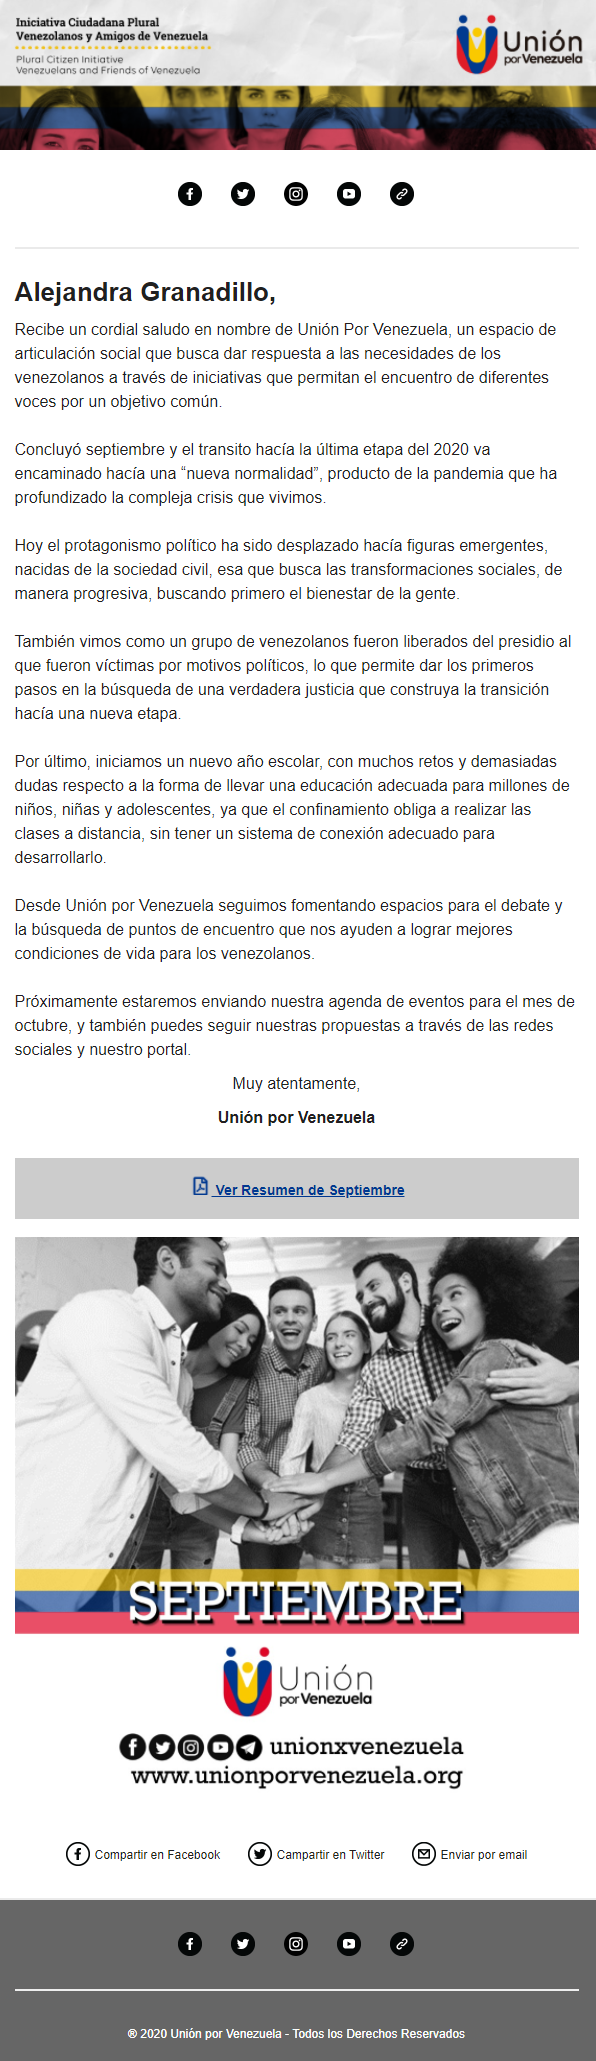 Union for Venezuela e-newsletter